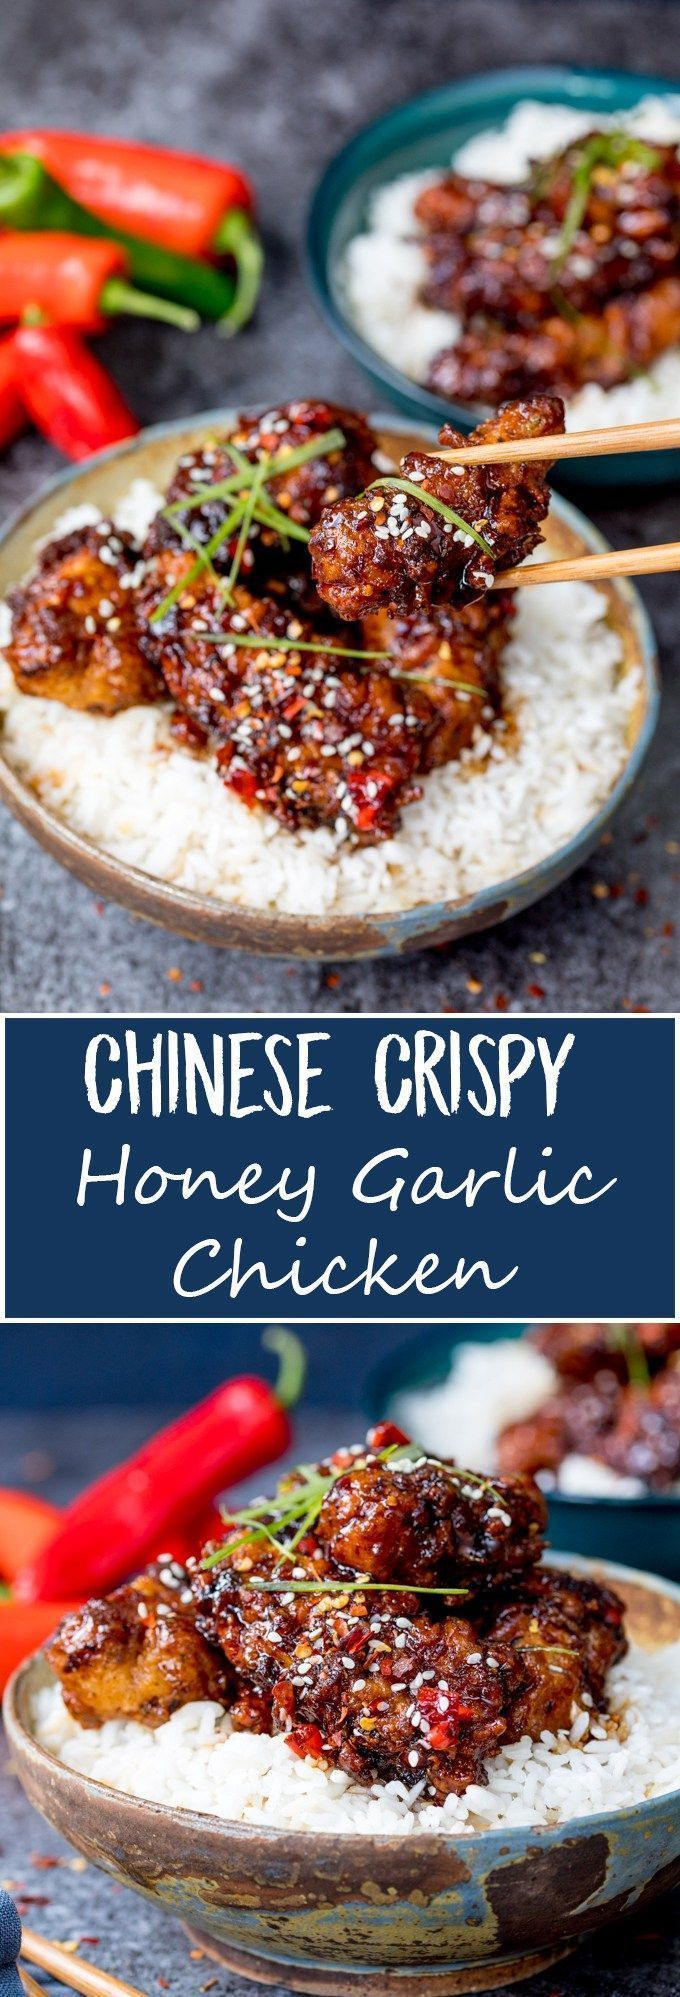 This Chinese Crispy Chicken with Honey Garlic Sauce is one of those meals everyone loves! Easy to make spicy or mild. Way tastier than takeout! #chinesefoodrecipes